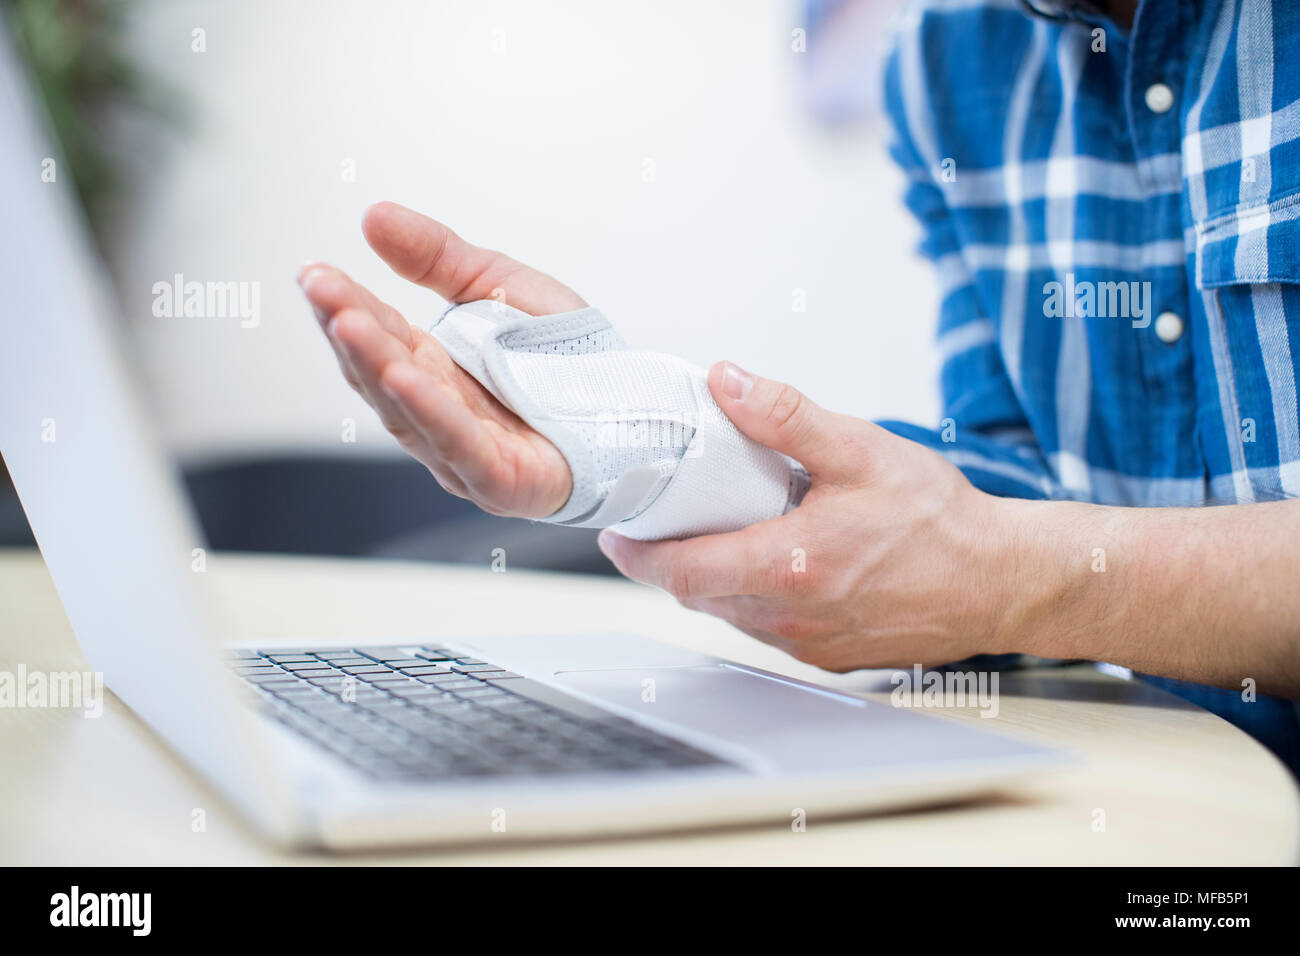 Close Up Of Businessman Using Laptop Suffering From Repetitive Strain Injury (RSI) - Stock Image